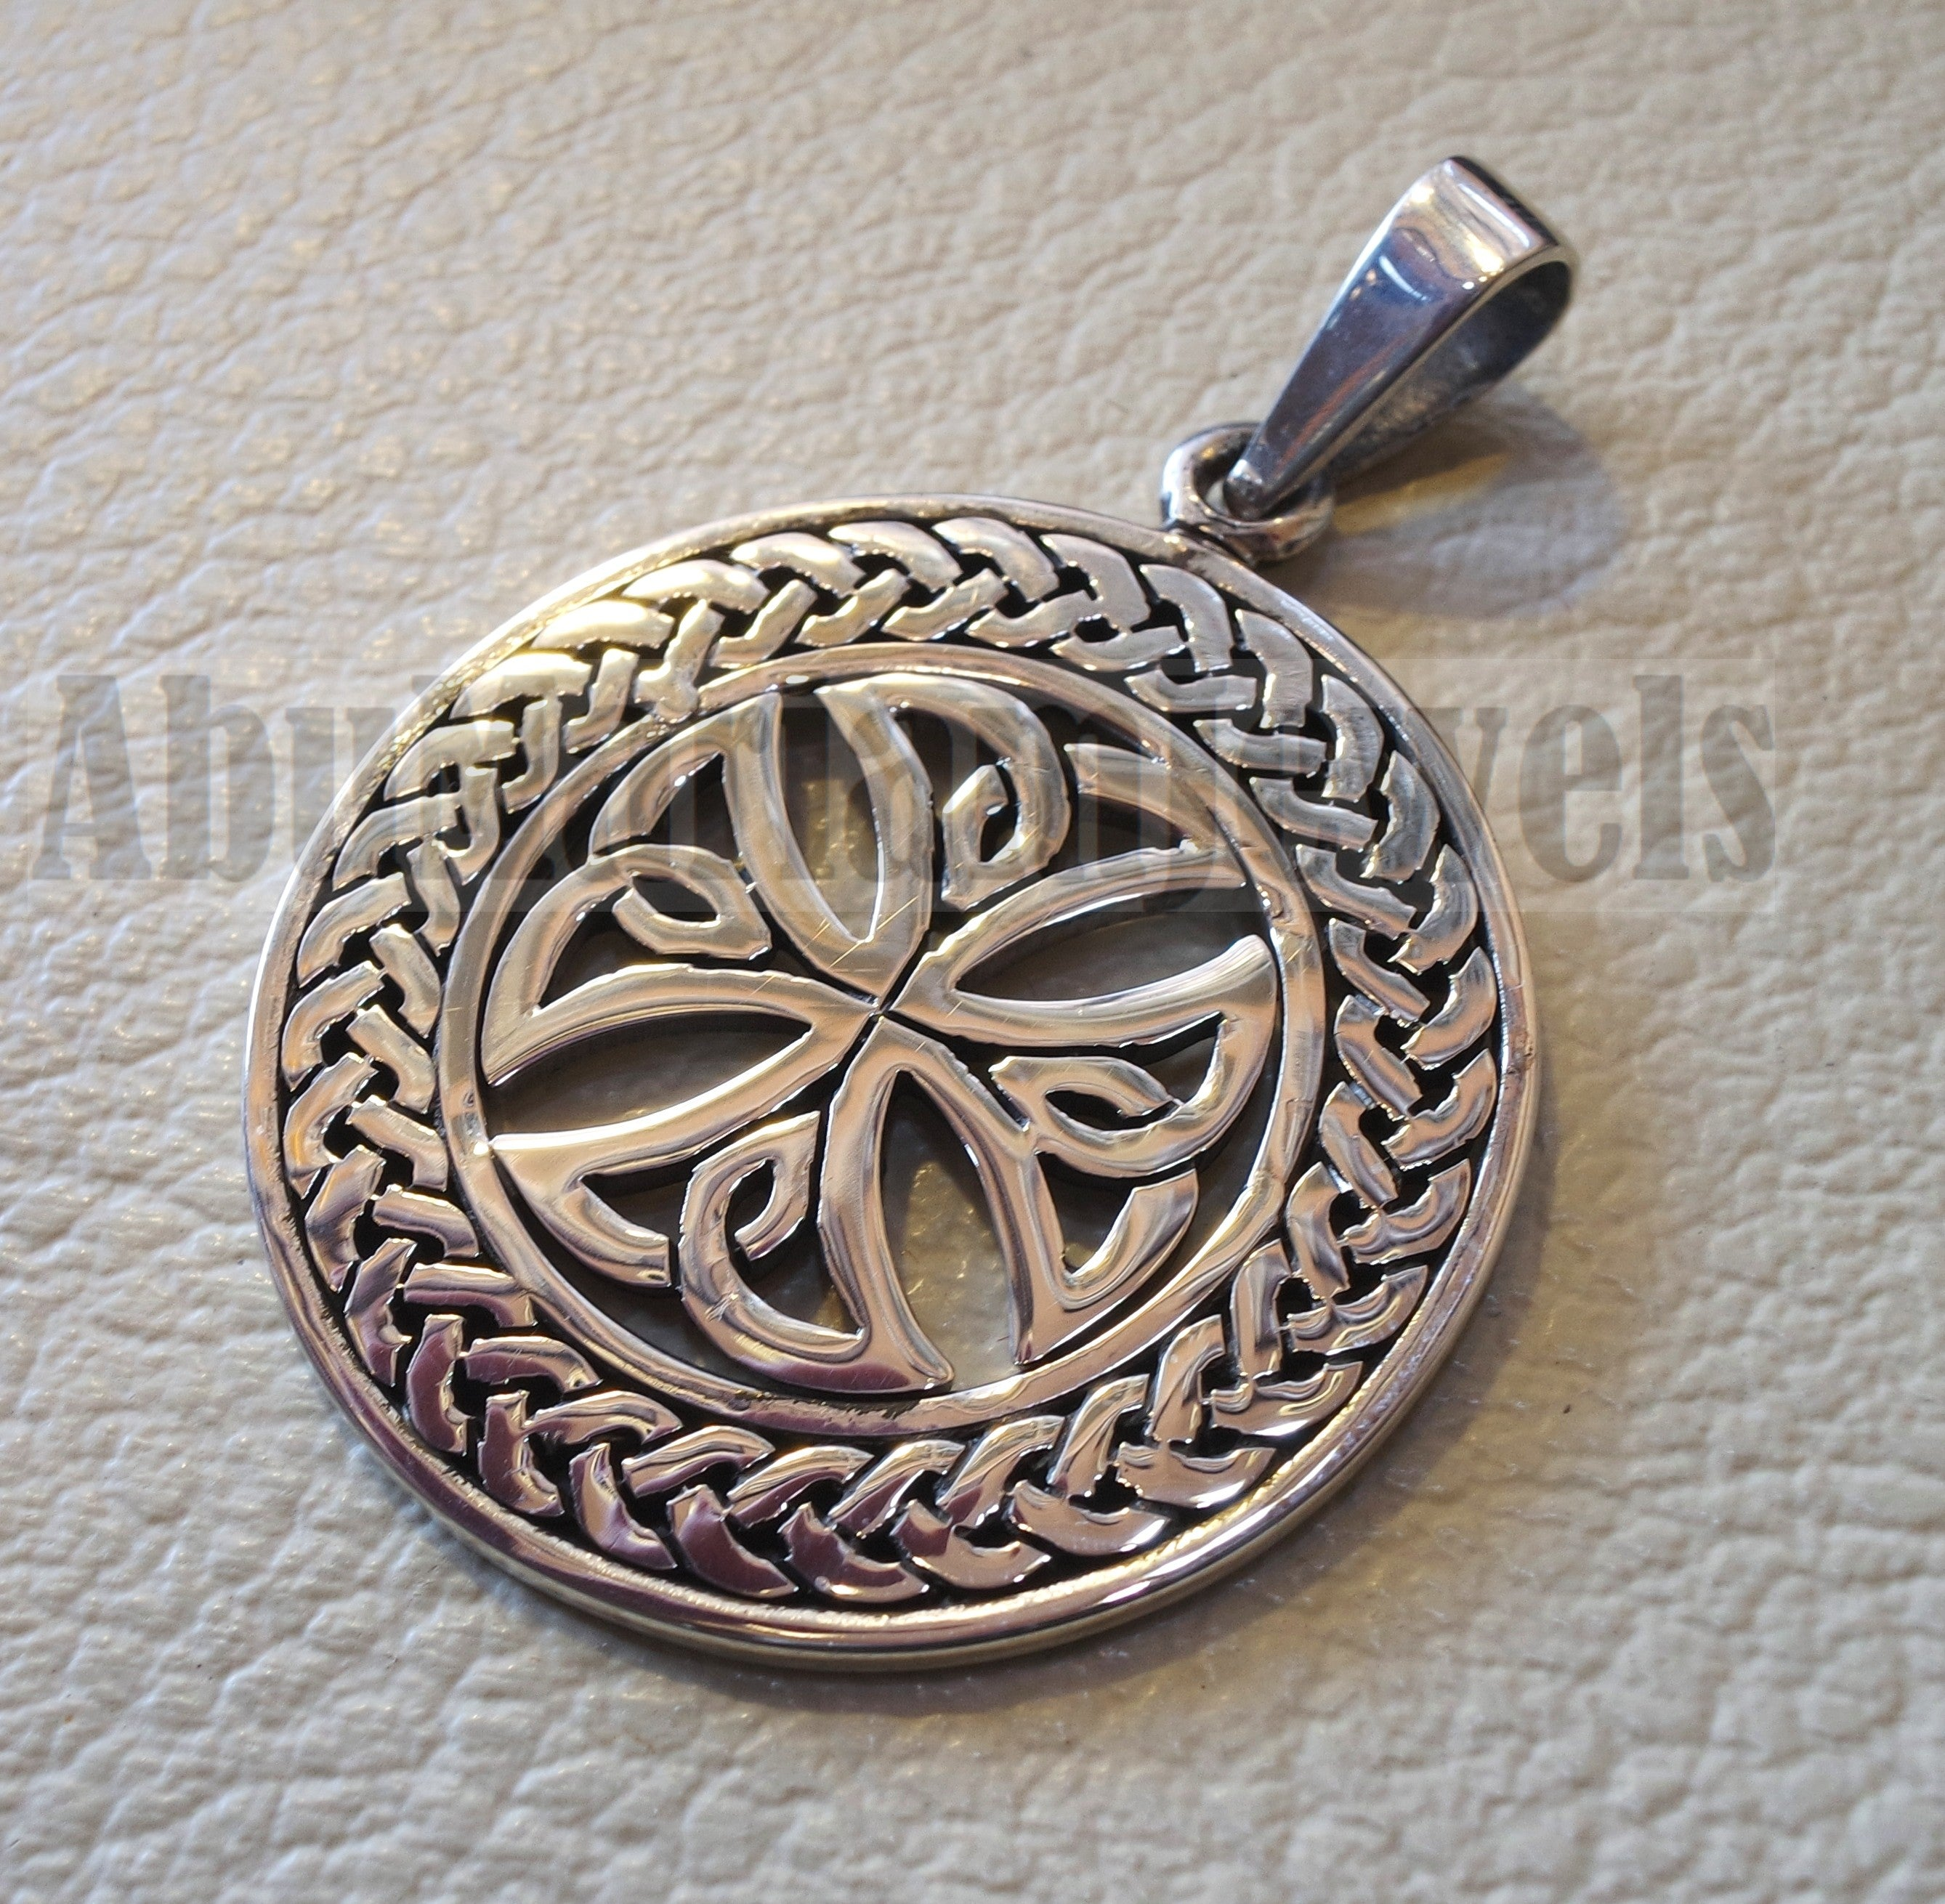 Celtic round cross pendant sterling silver 925 jewelry christianity vintage handmade heavy express shipping Christ religion